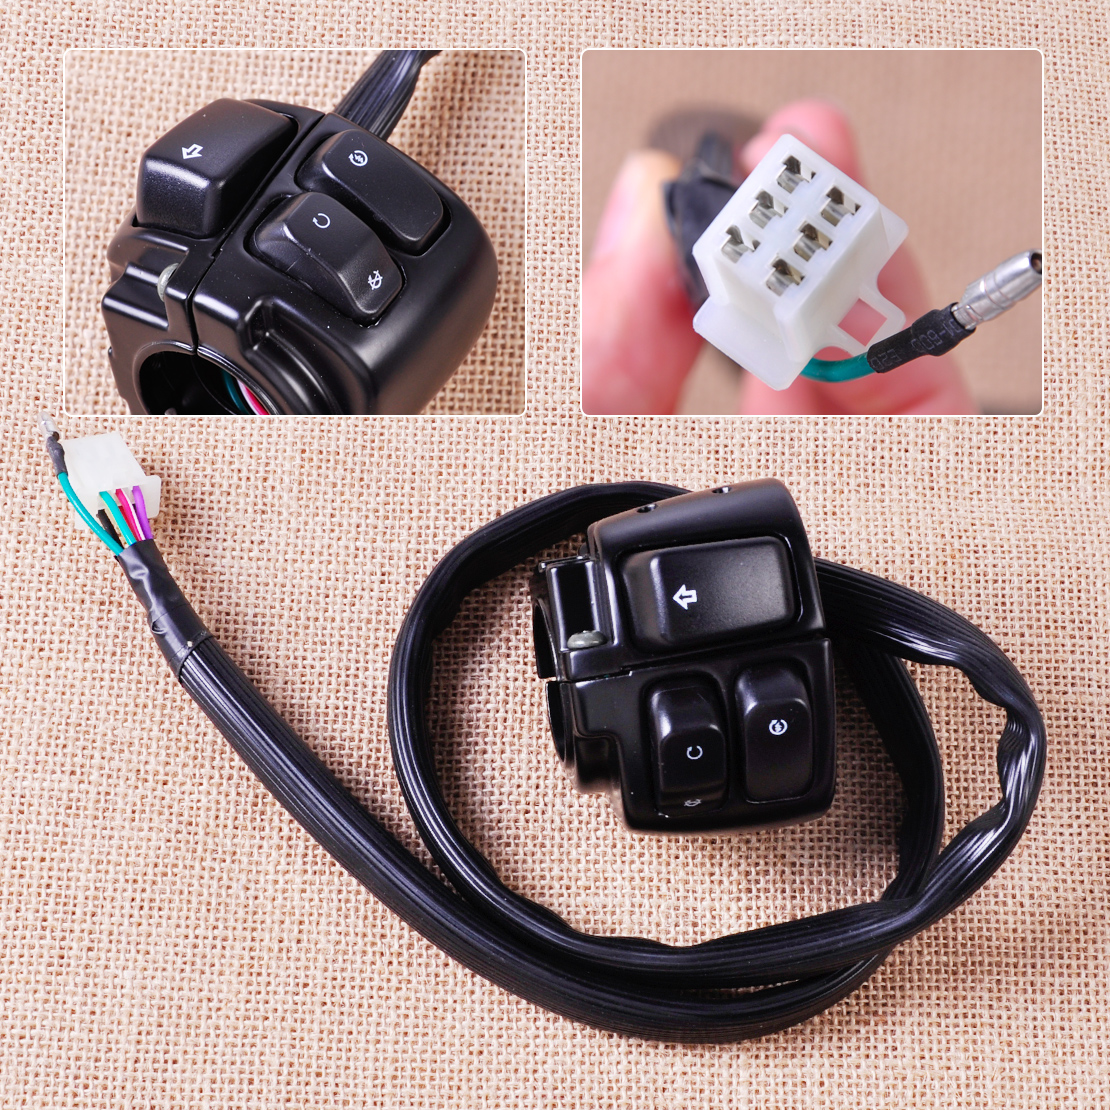 citall motorcycle 1 handlebar ignition turn signal switch wiring harness for harley softail dyna sportster [ 1110 x 1110 Pixel ]